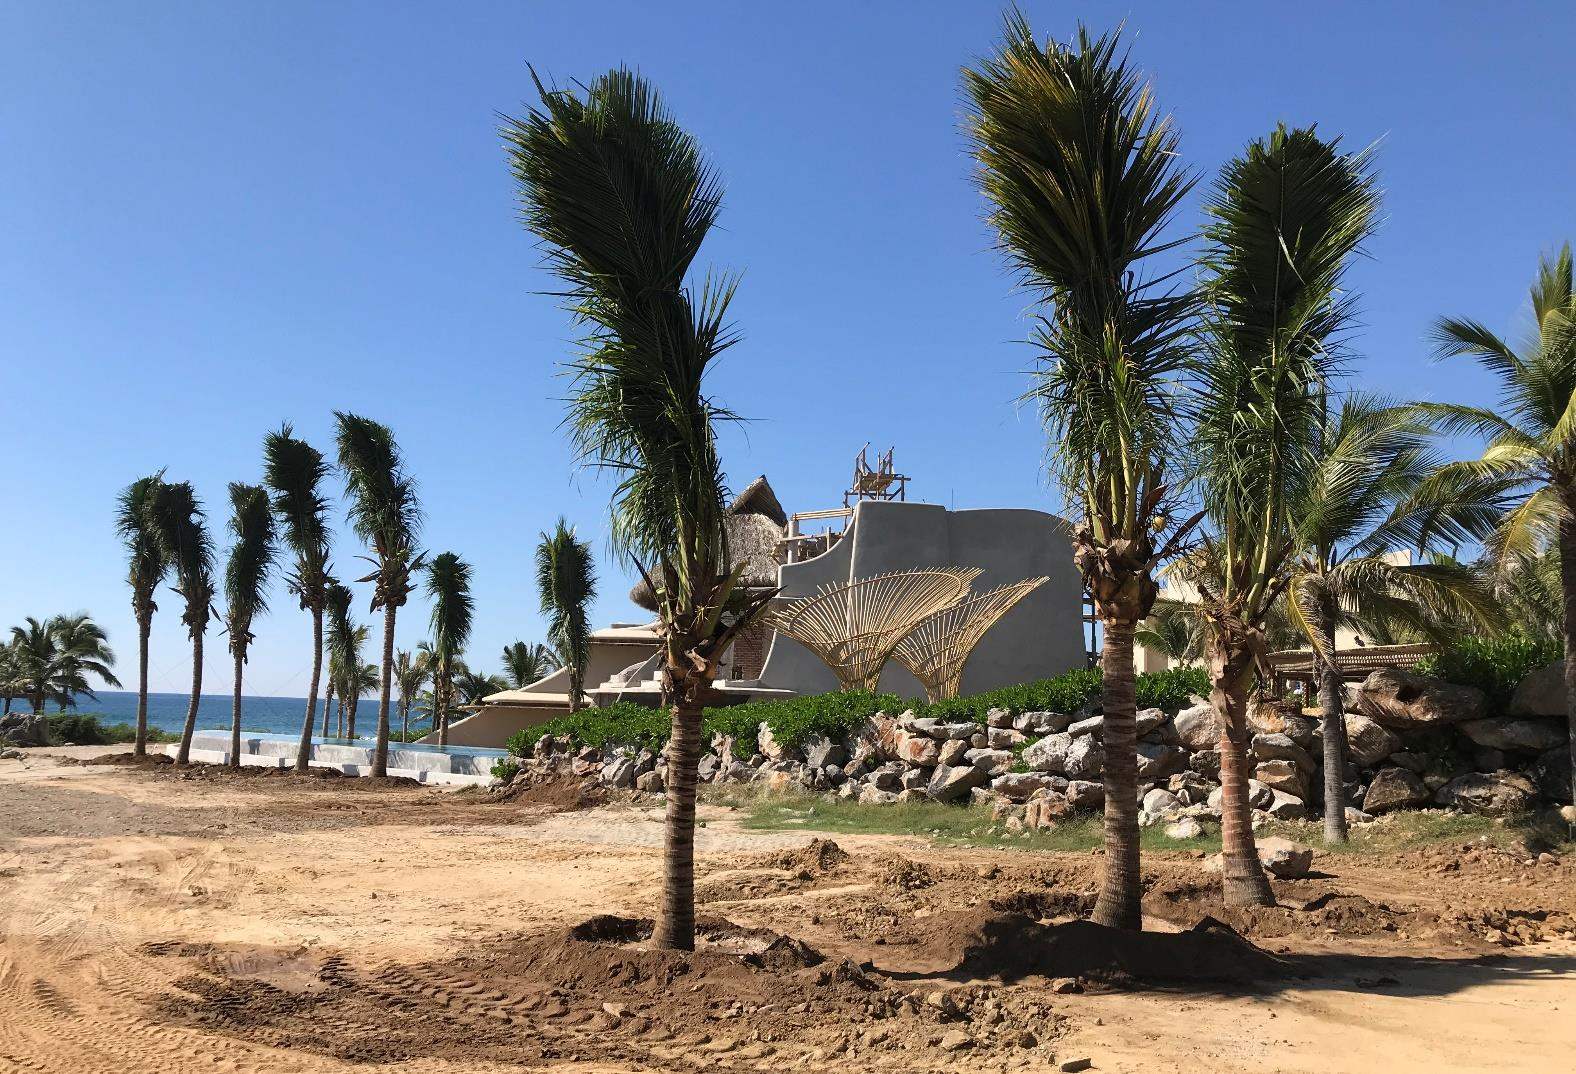 New Palm Trees | Beach Club Area